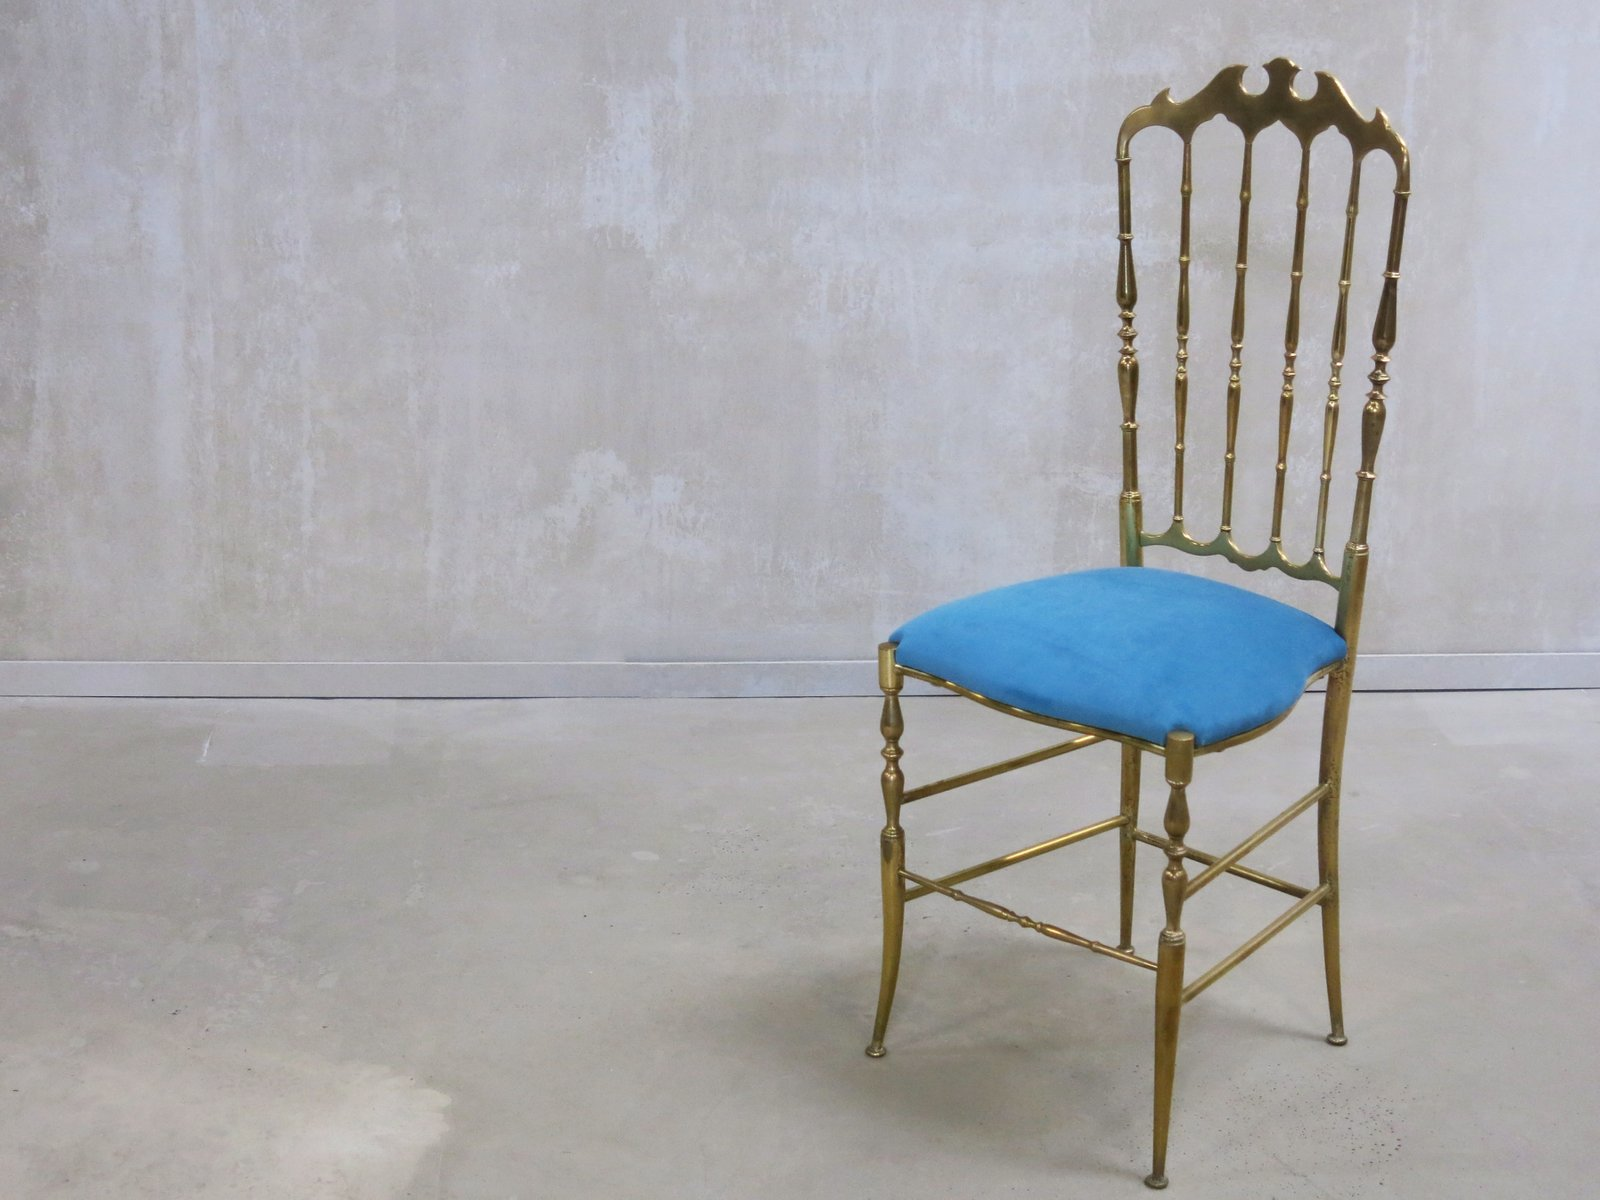 Vintage Italian Chiavari Chair with High Back 1950s for sale at